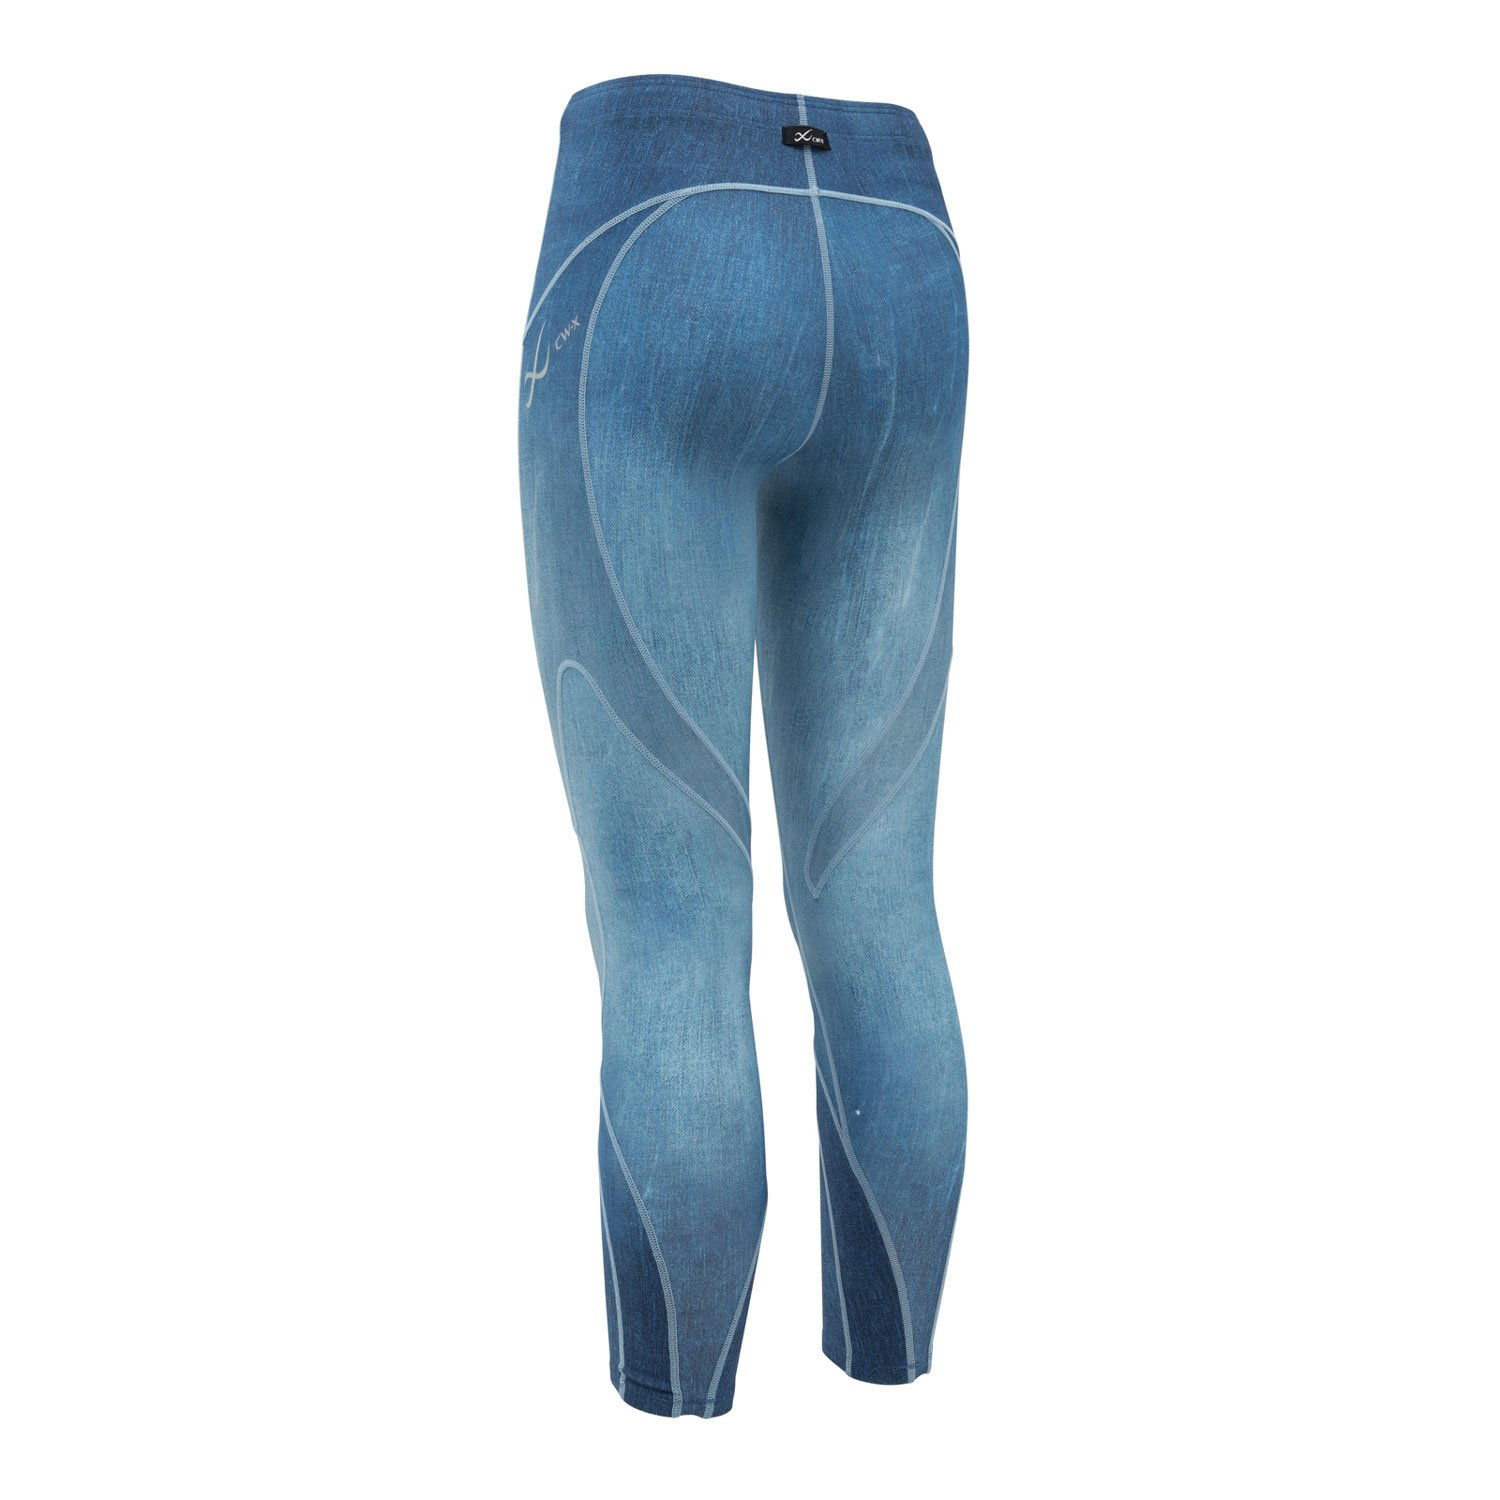 CW-X Women's Stabilyx Joint Support Compression Tight, Denim Blue, X-Small by CW-X (Image #2)